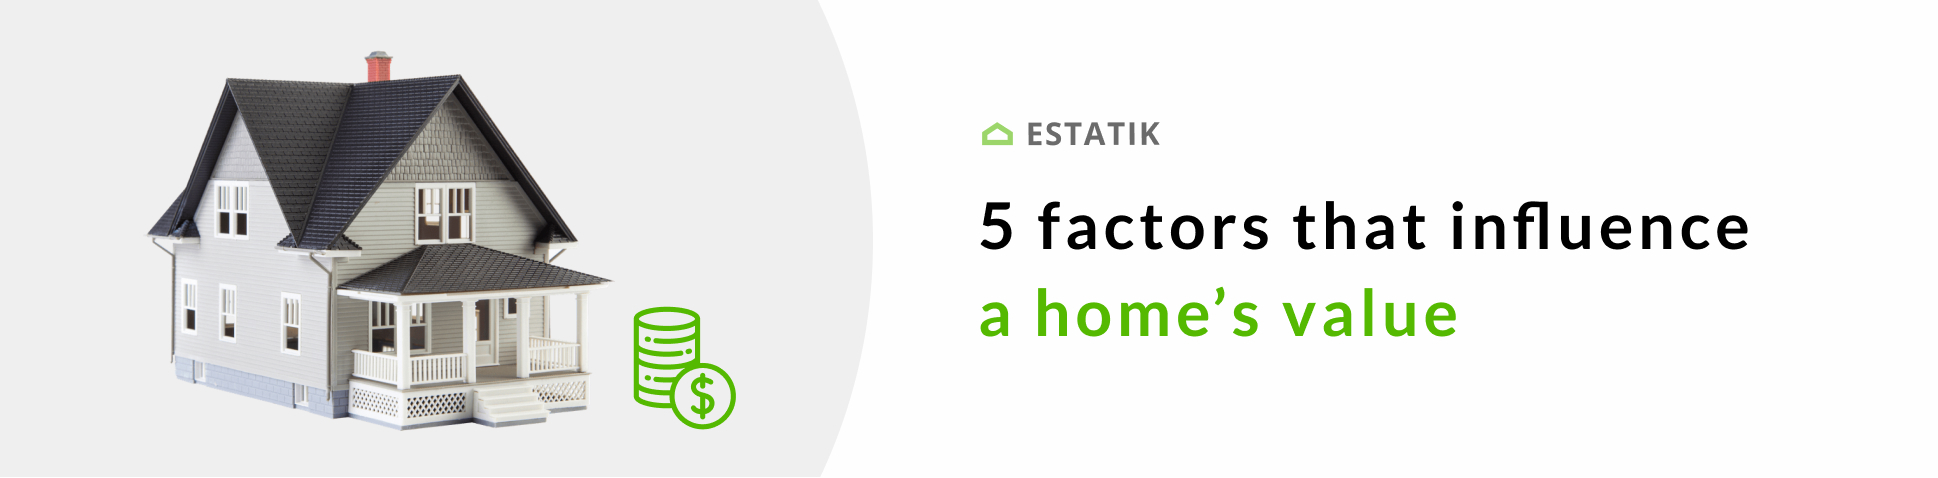 estatik_blog_what_influences_home_price